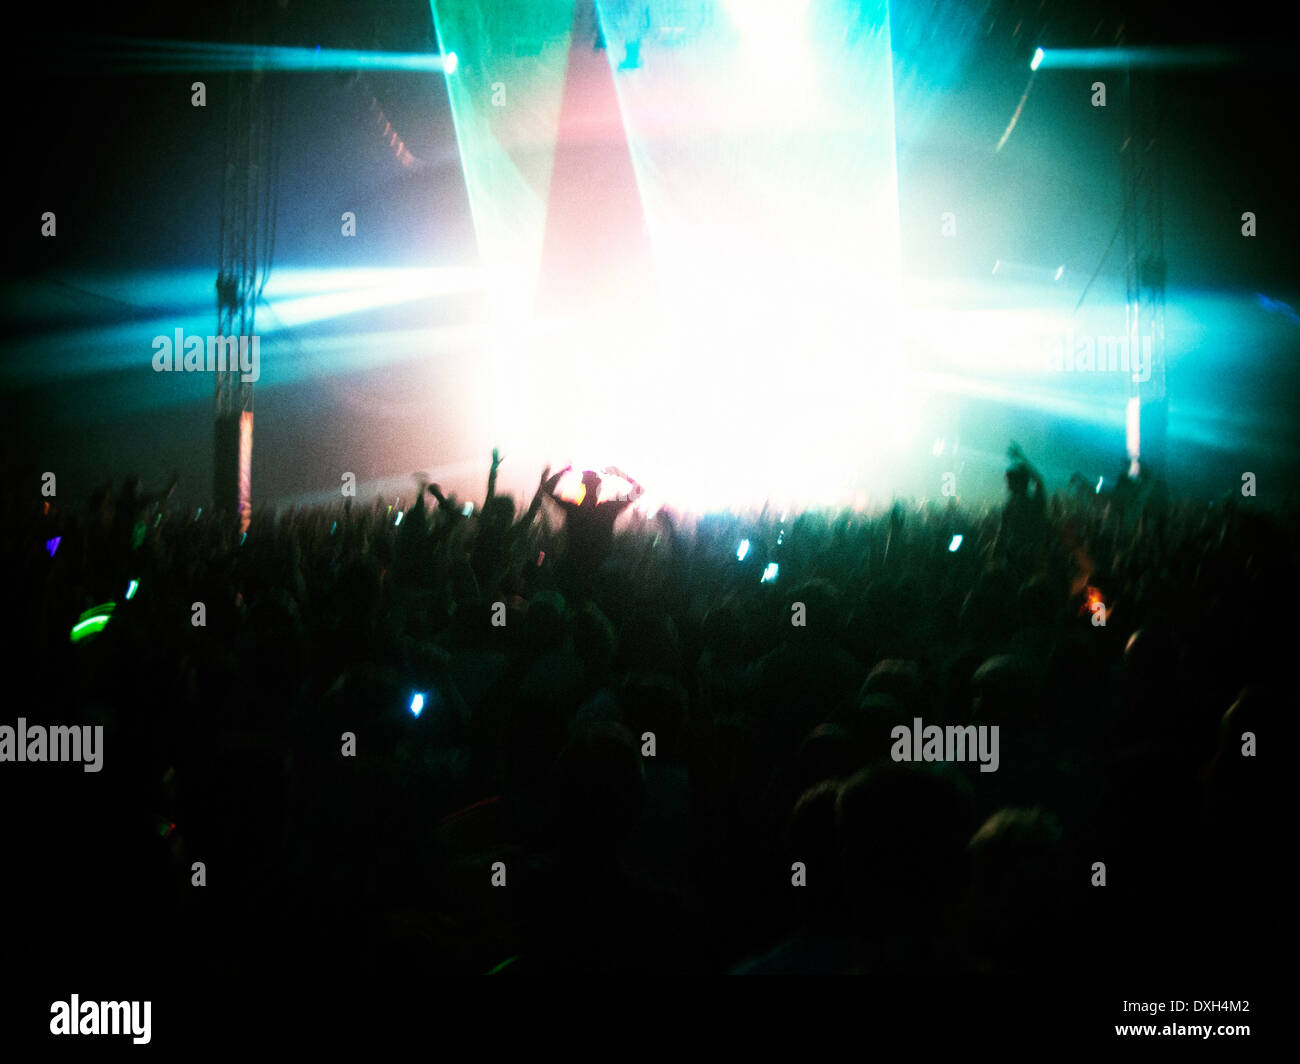 Fans facing illuminated stage - Stock Image